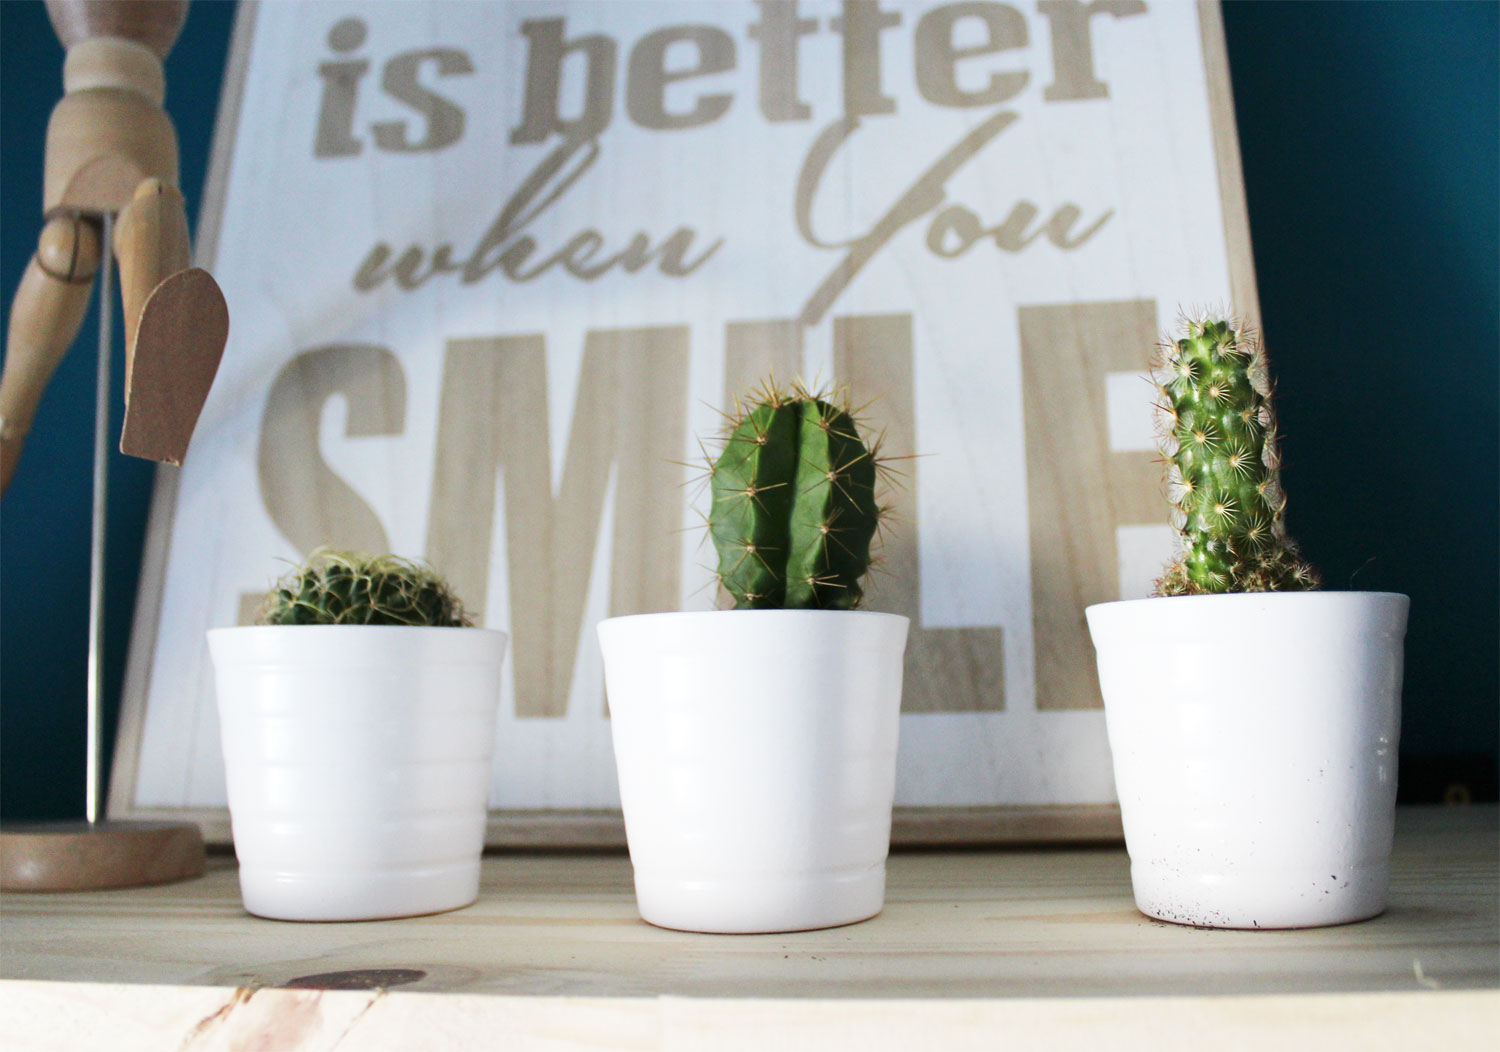 Life is better when you smile et cactus